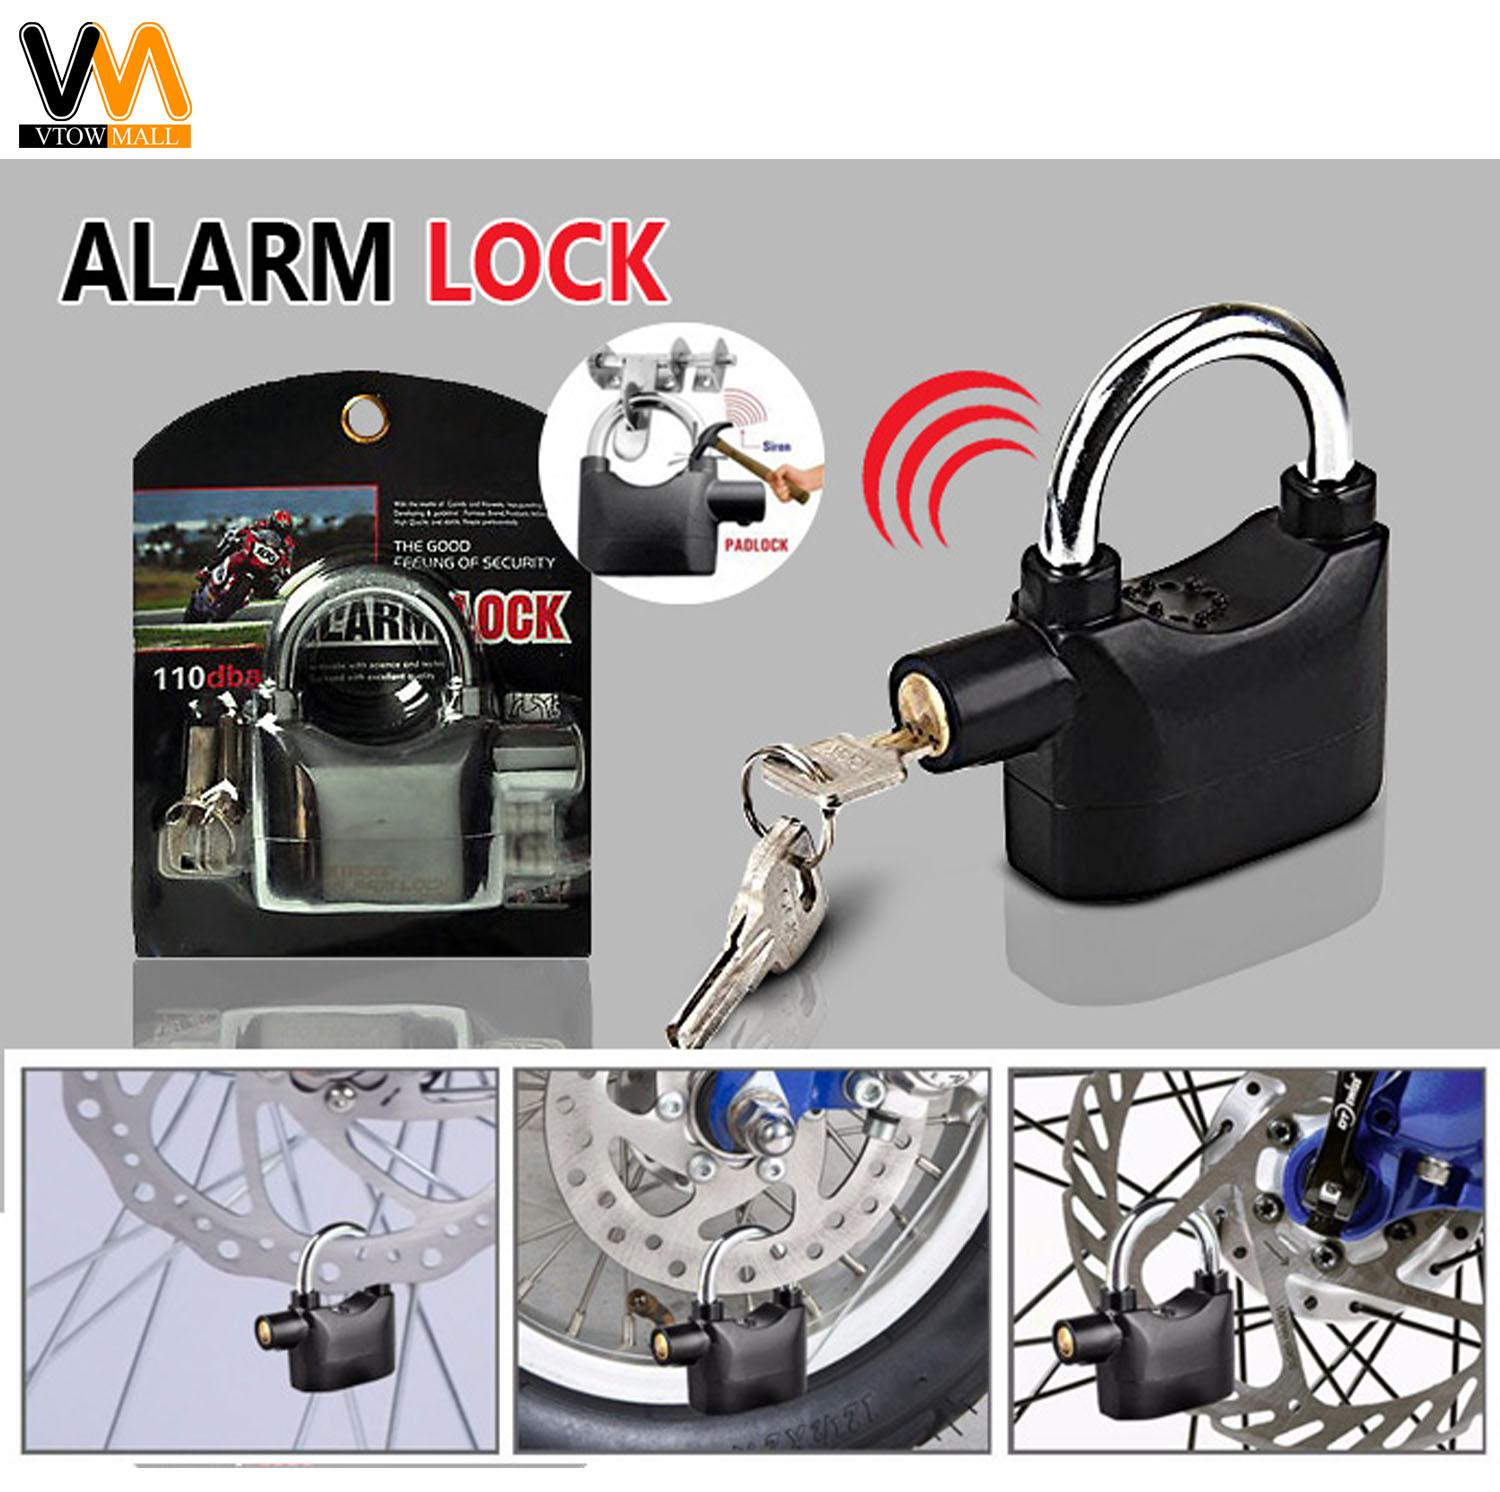 Door Lock For Sale Locks Prices Brands Review In 3 Wire Positive Trigger Schematic Of Cars Locking Systems Alarm Padlock Motor Bike Car 110db Anti Theft